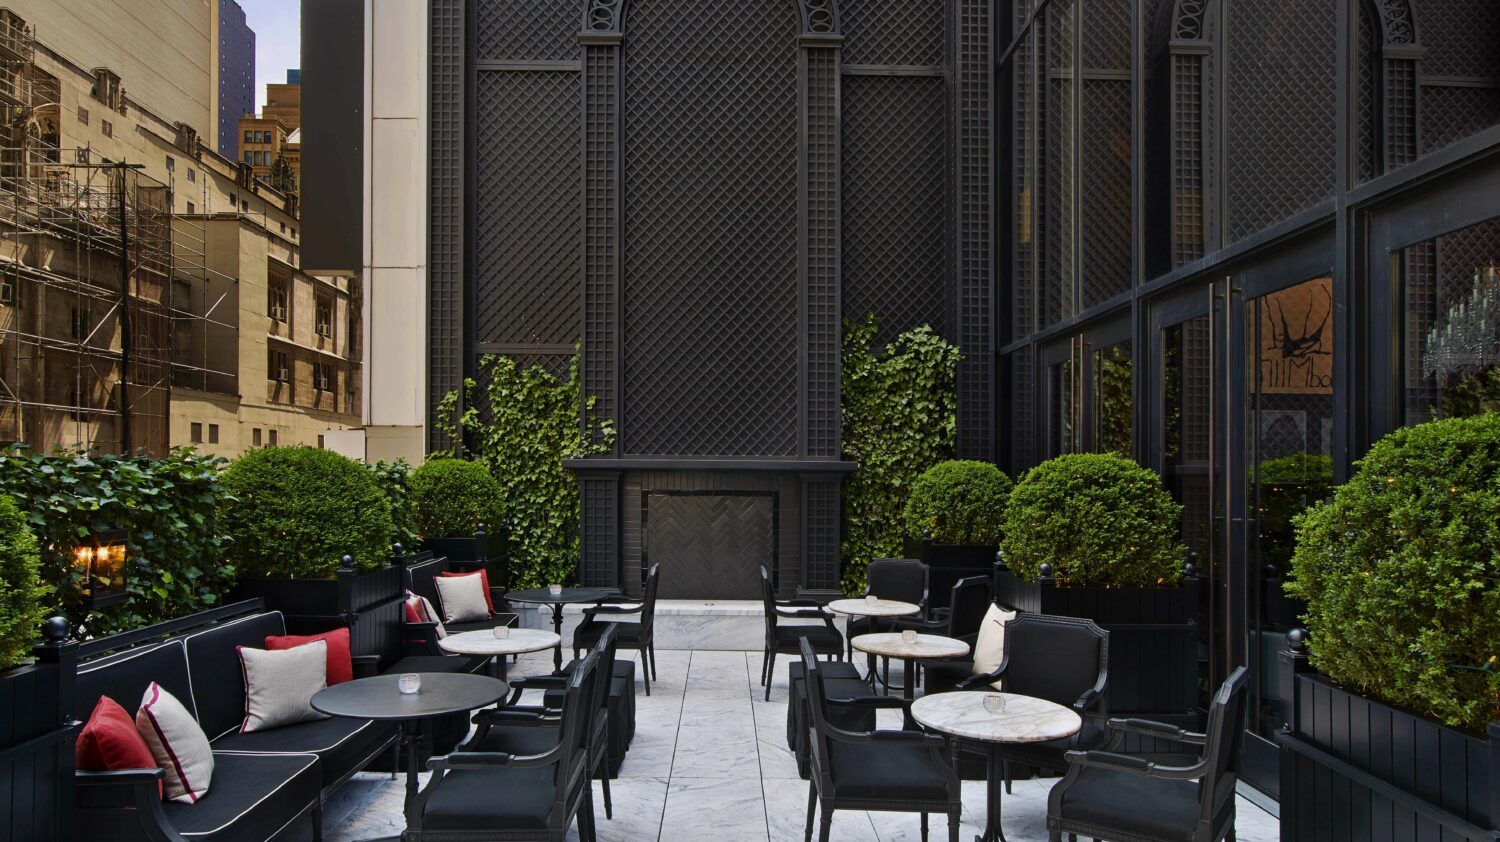 the terrace-baccarat hotel nyc